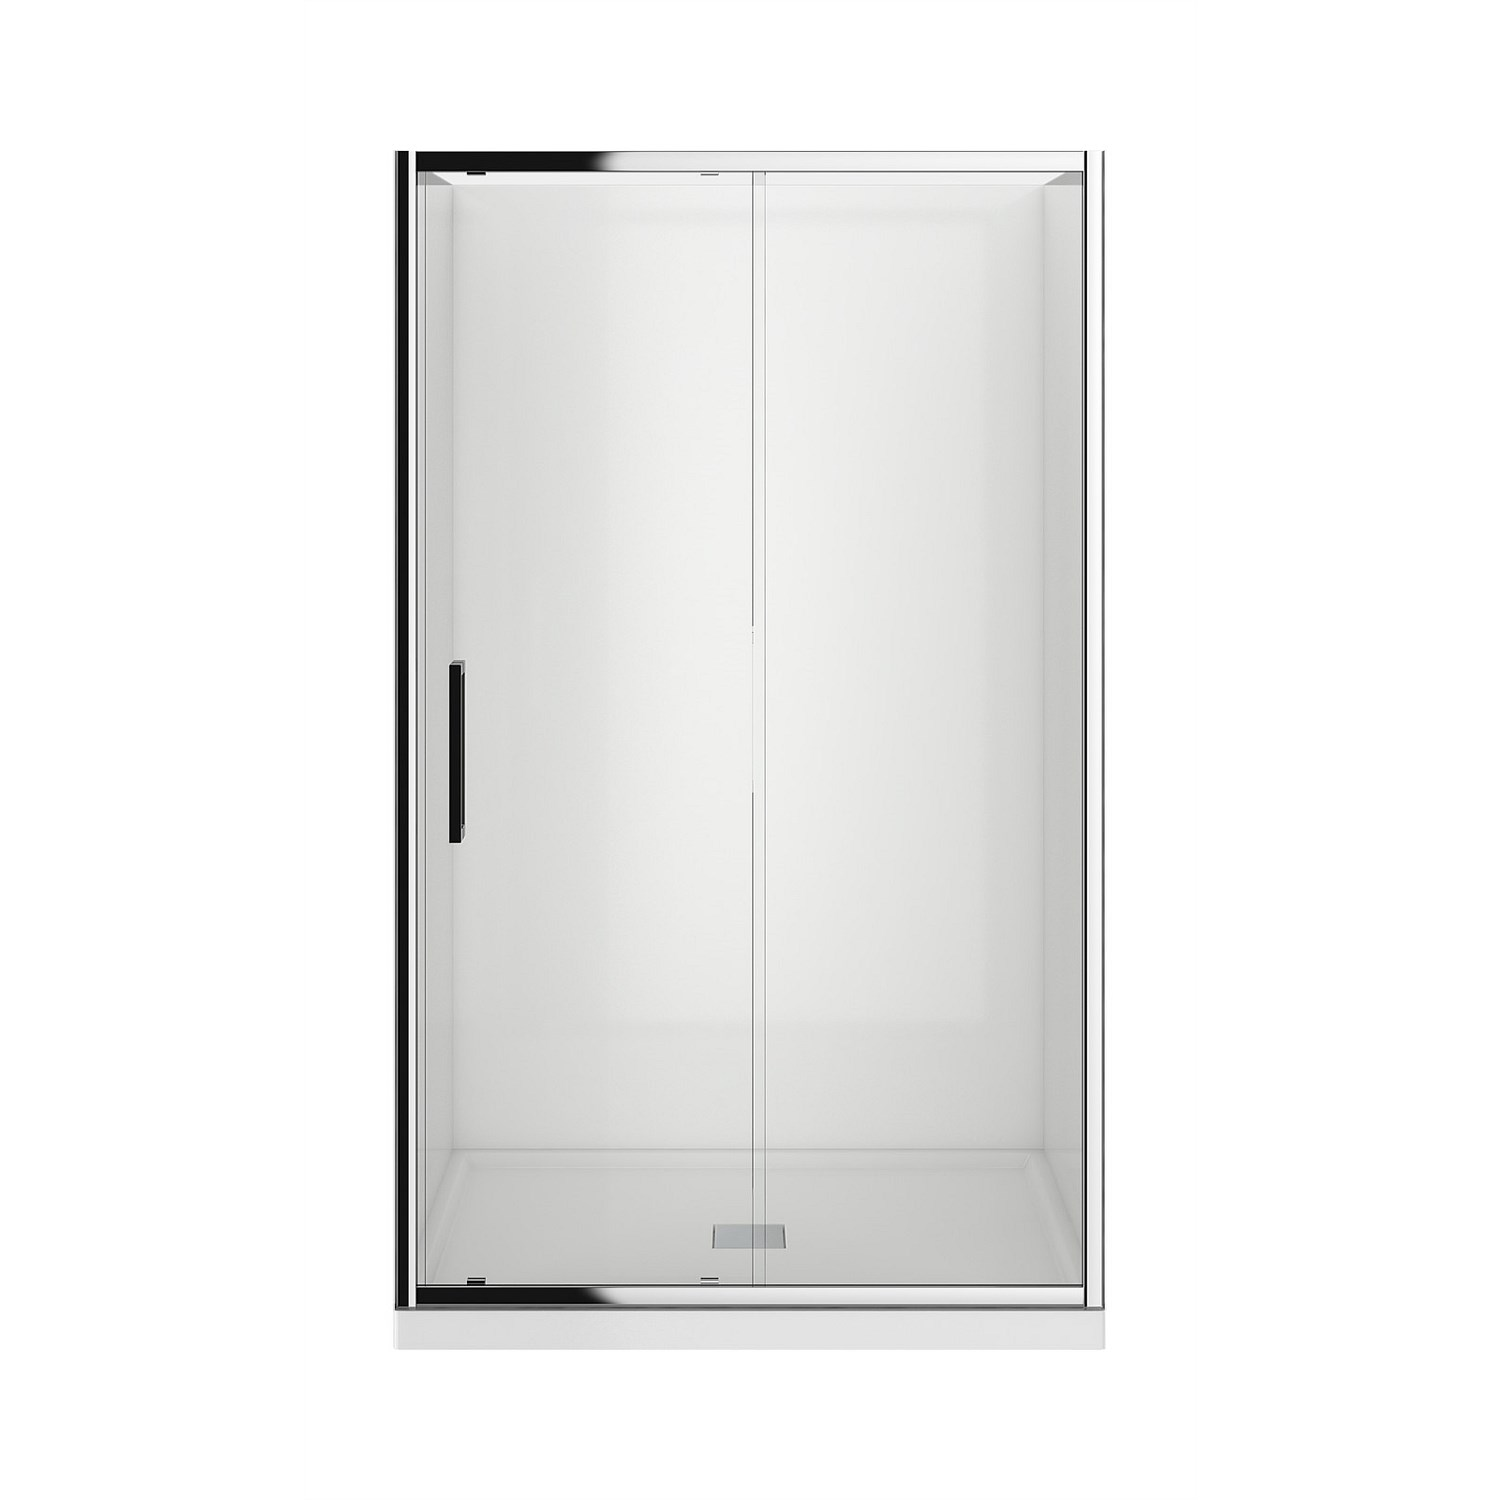 LeVivi 1200mm 3 sided Shower Enclosure | Plumbing World